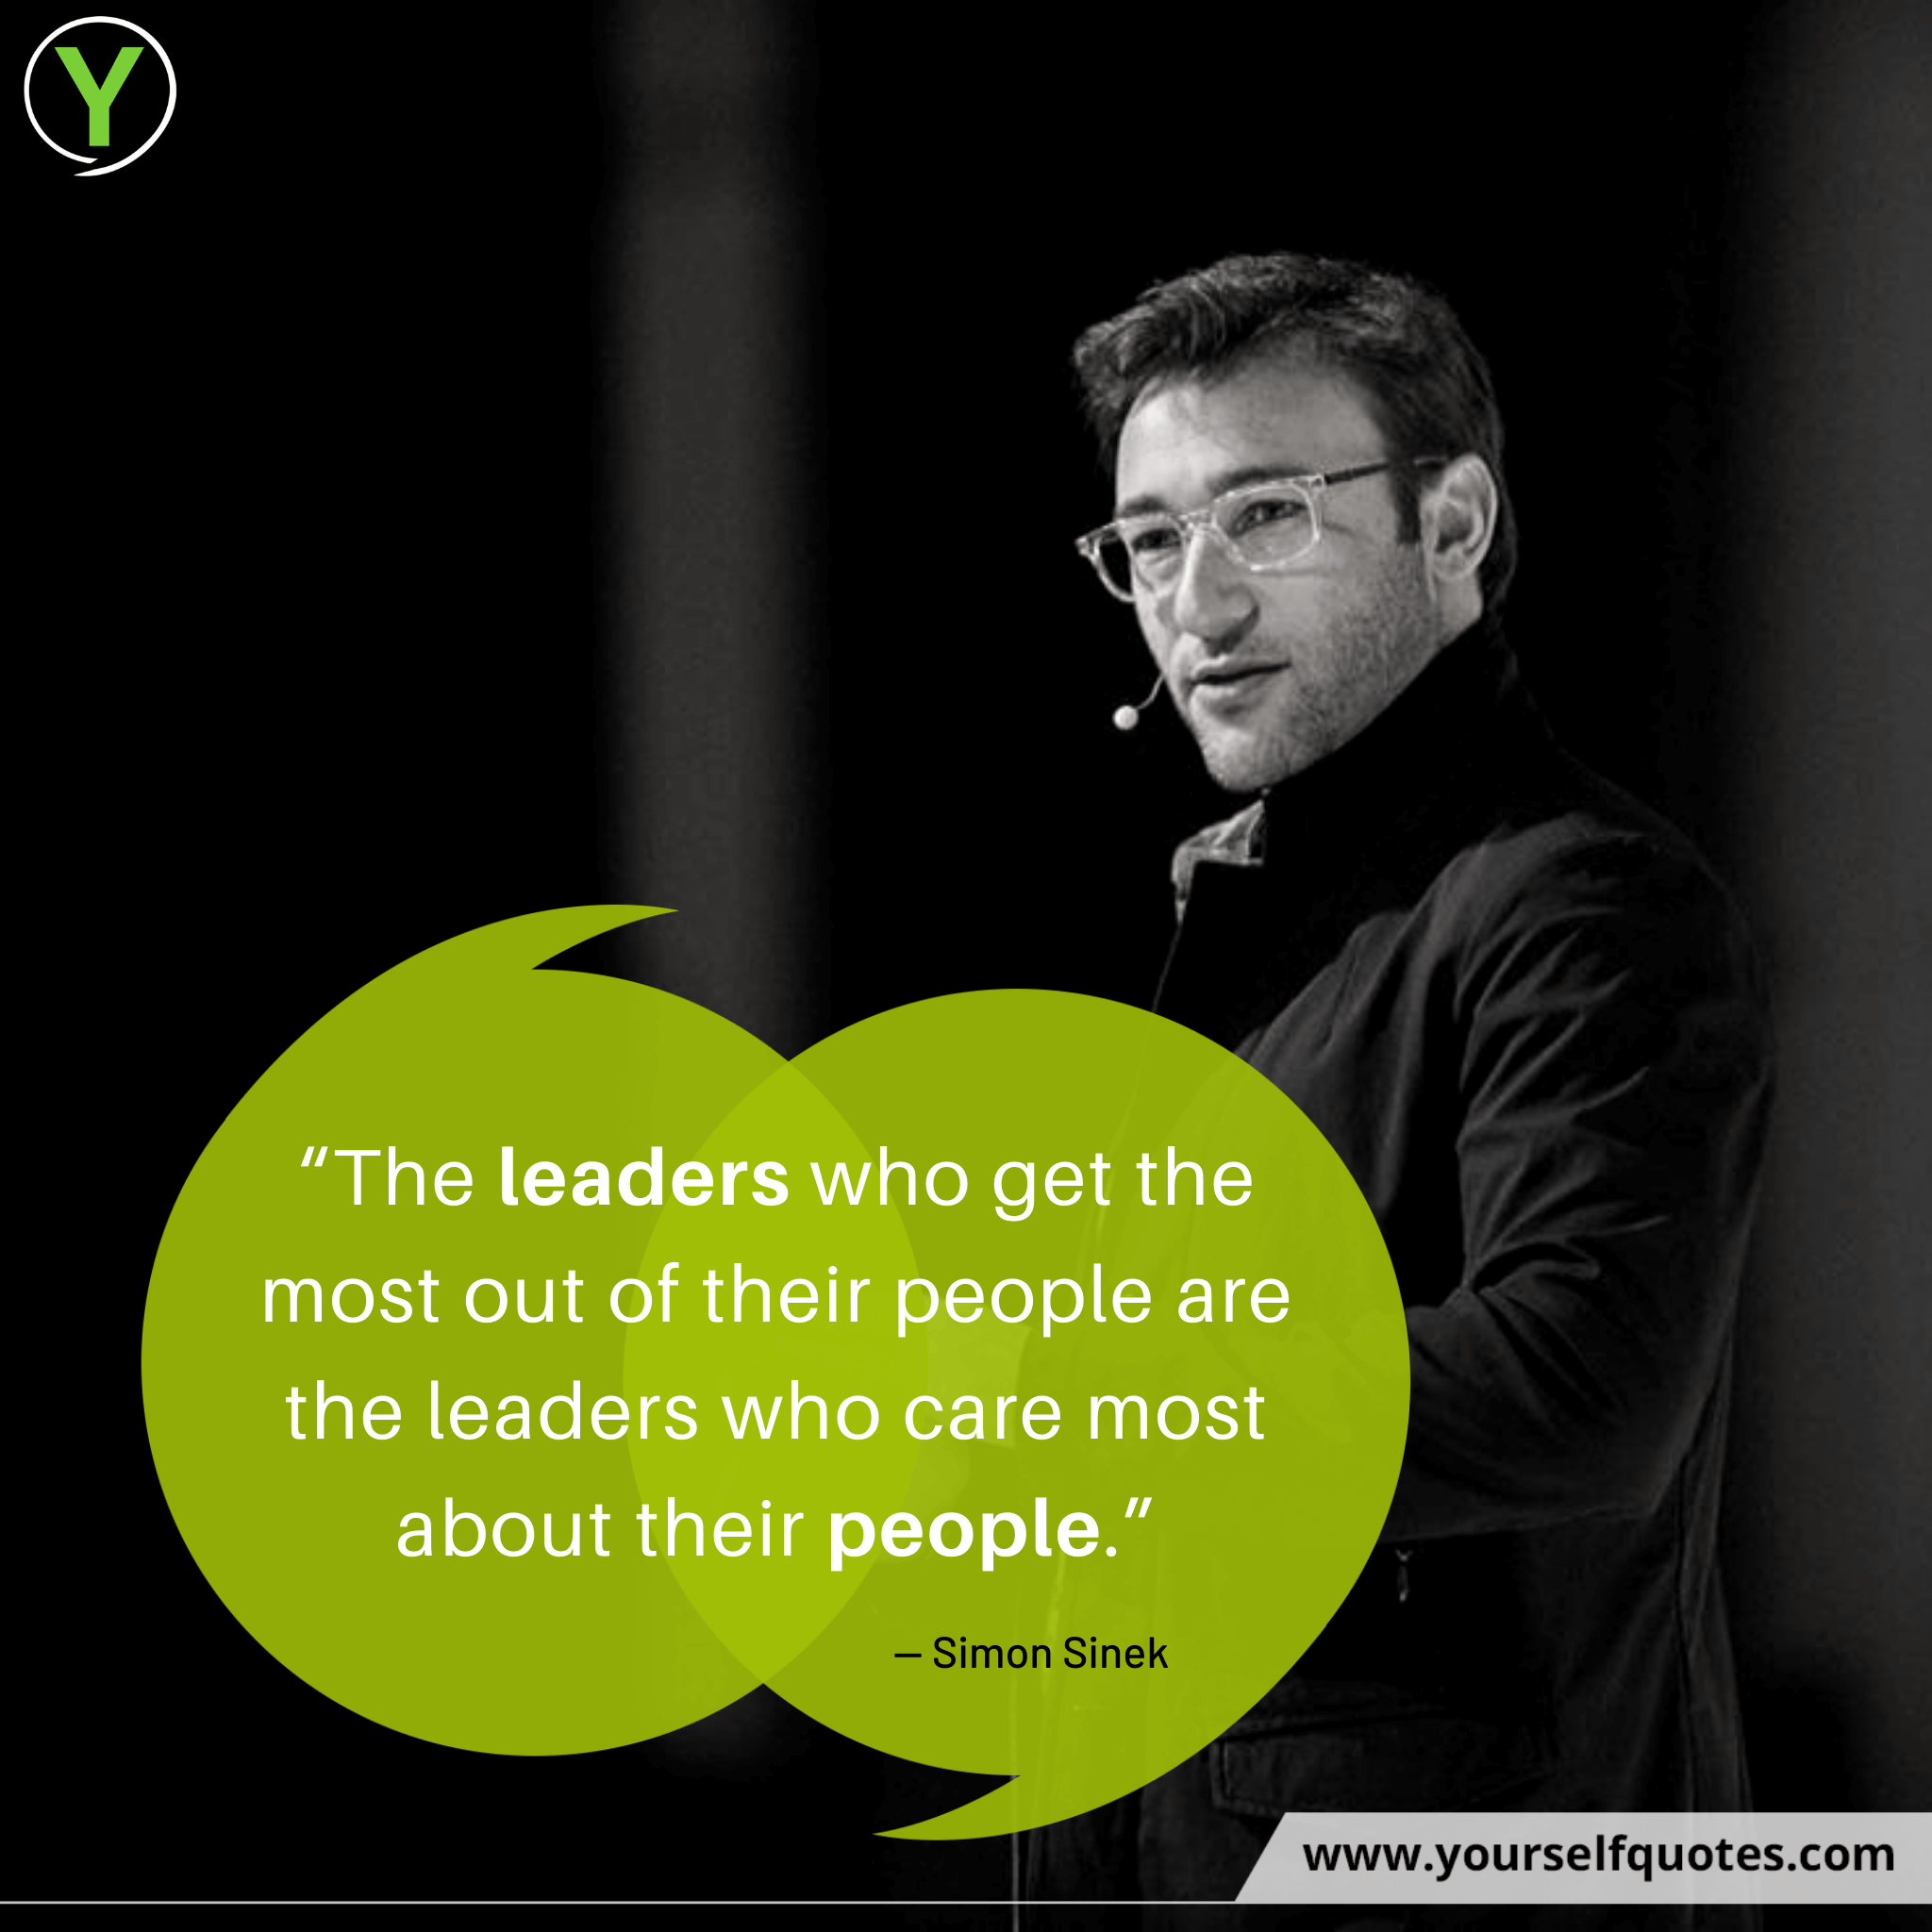 Leader Quotes by Simon Sinek